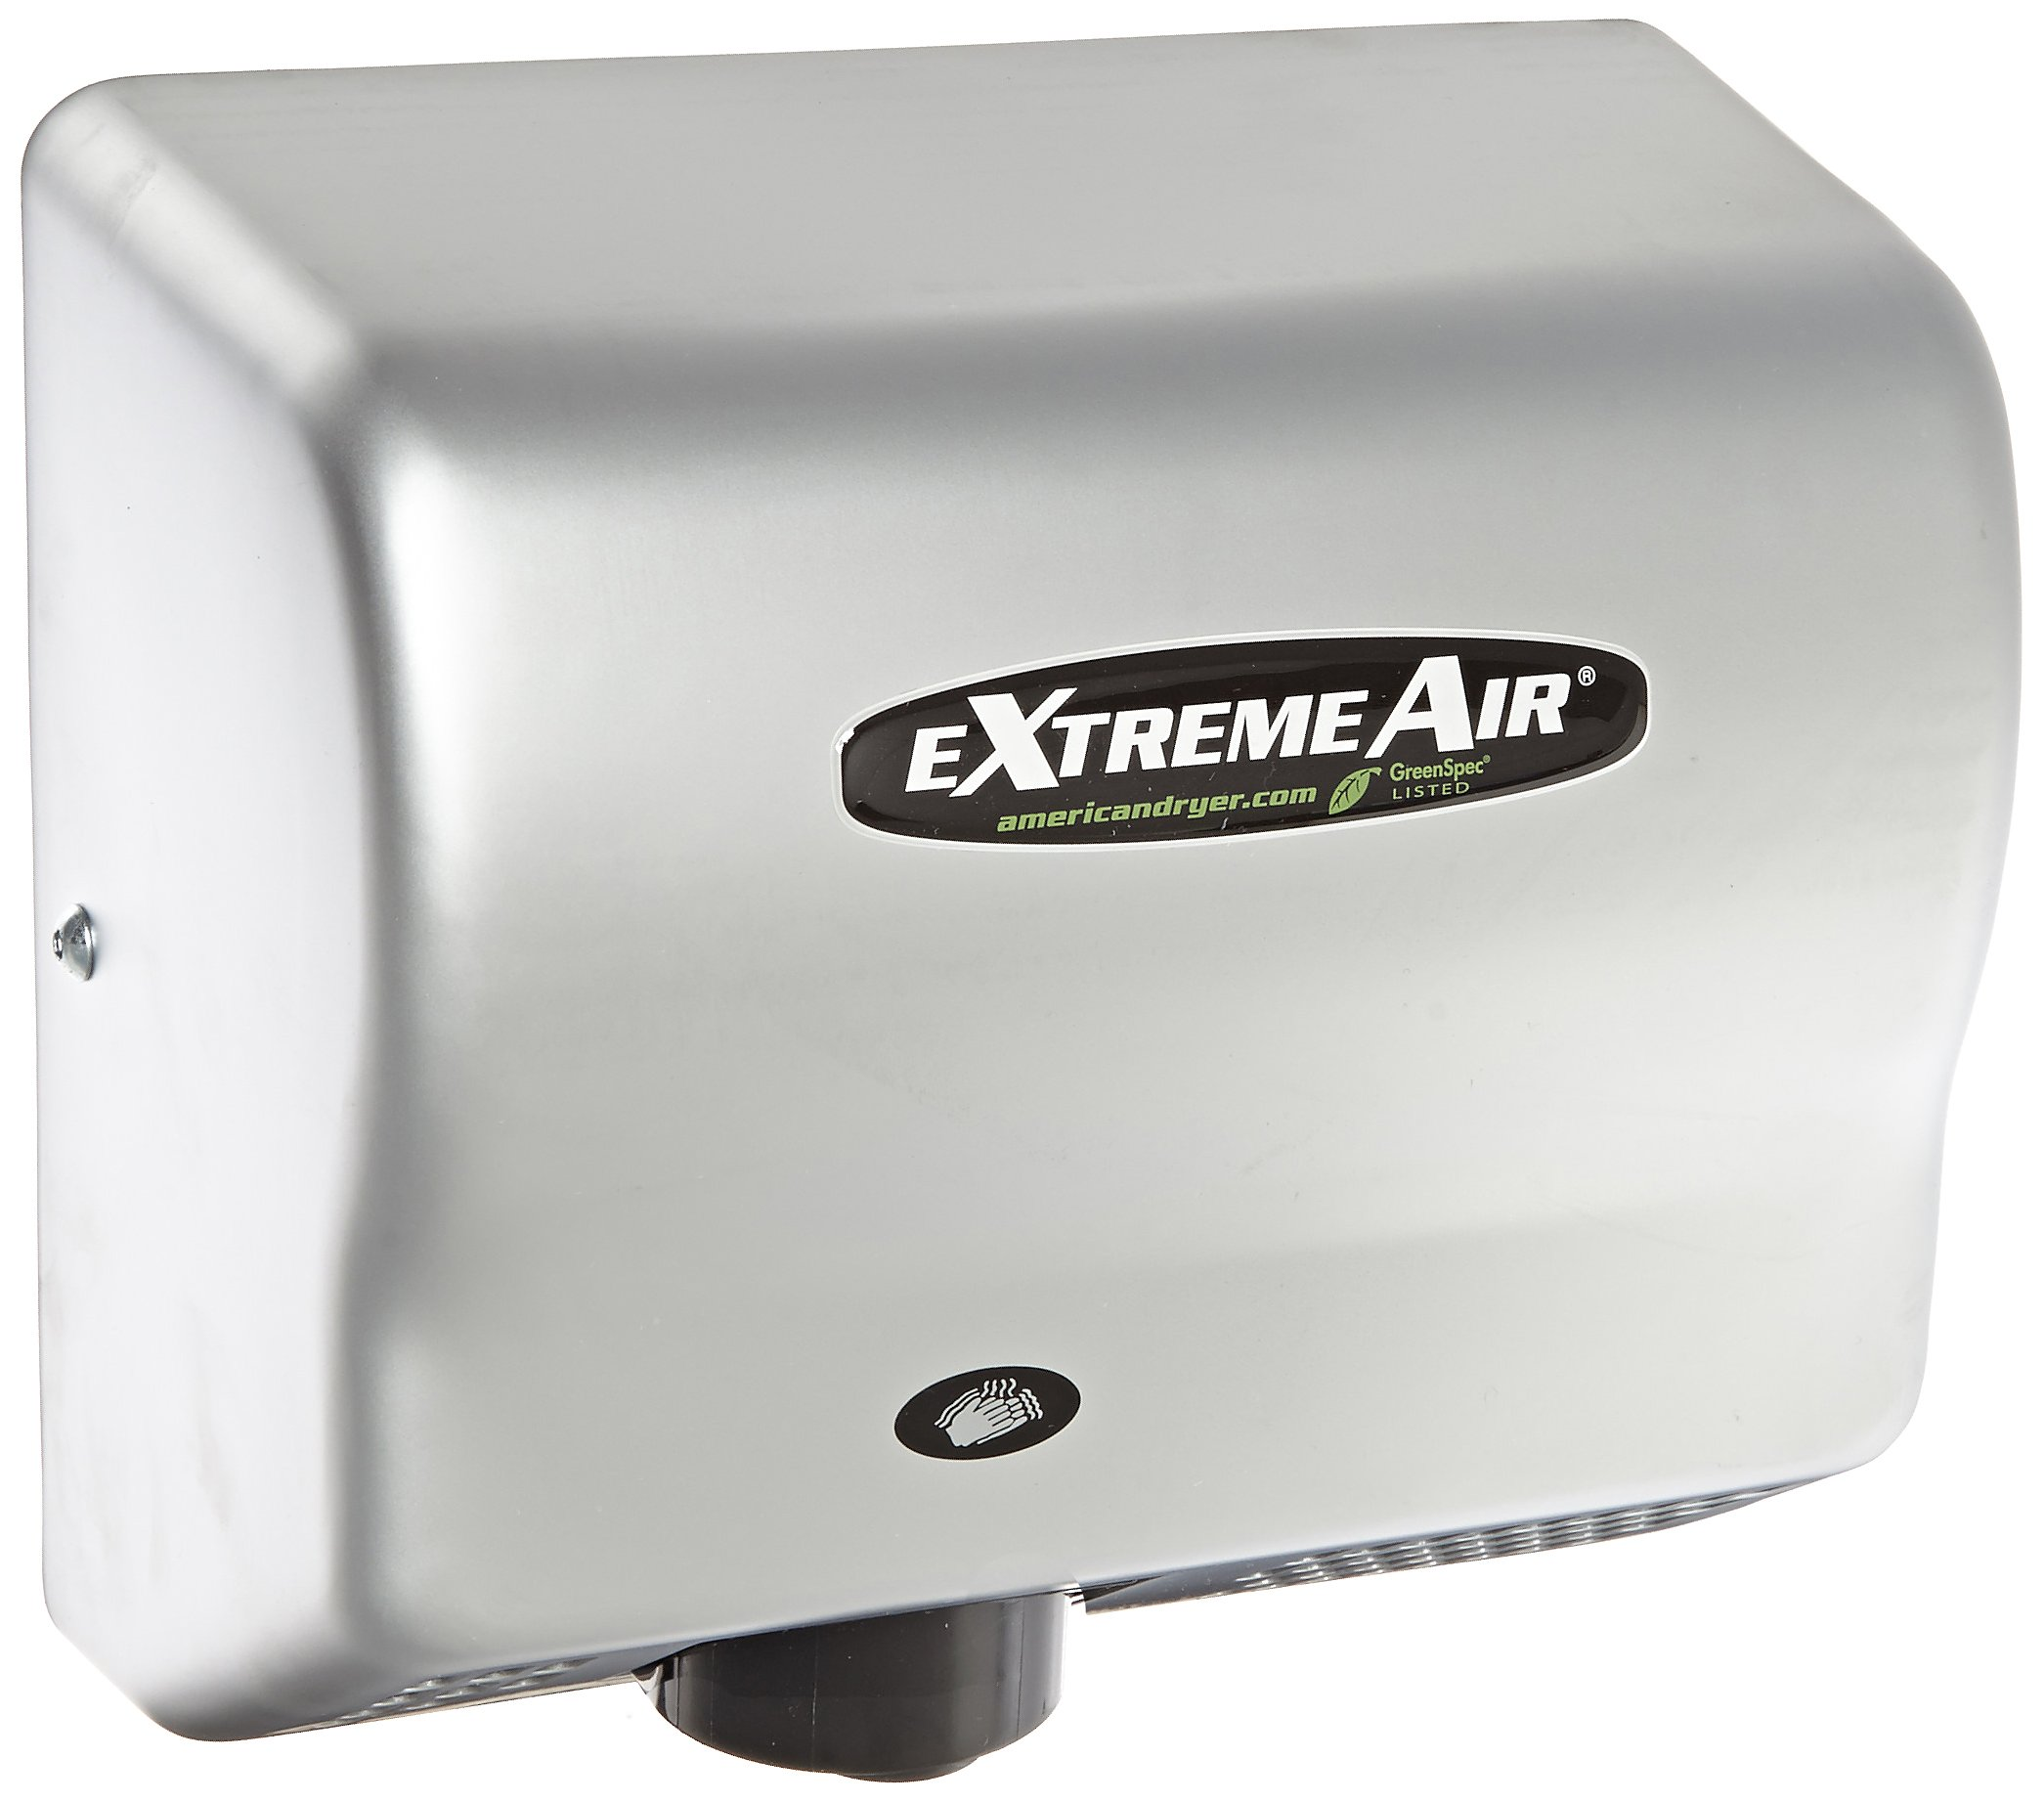 American Dryer ExtremeAir GXT9-C Steel Cover High-Speed Automatic Hand Dryer, 10-12 Second Dries, 100-240V, 1,500W Maximum Power, 50/60Hz, Satin Chrome Finish